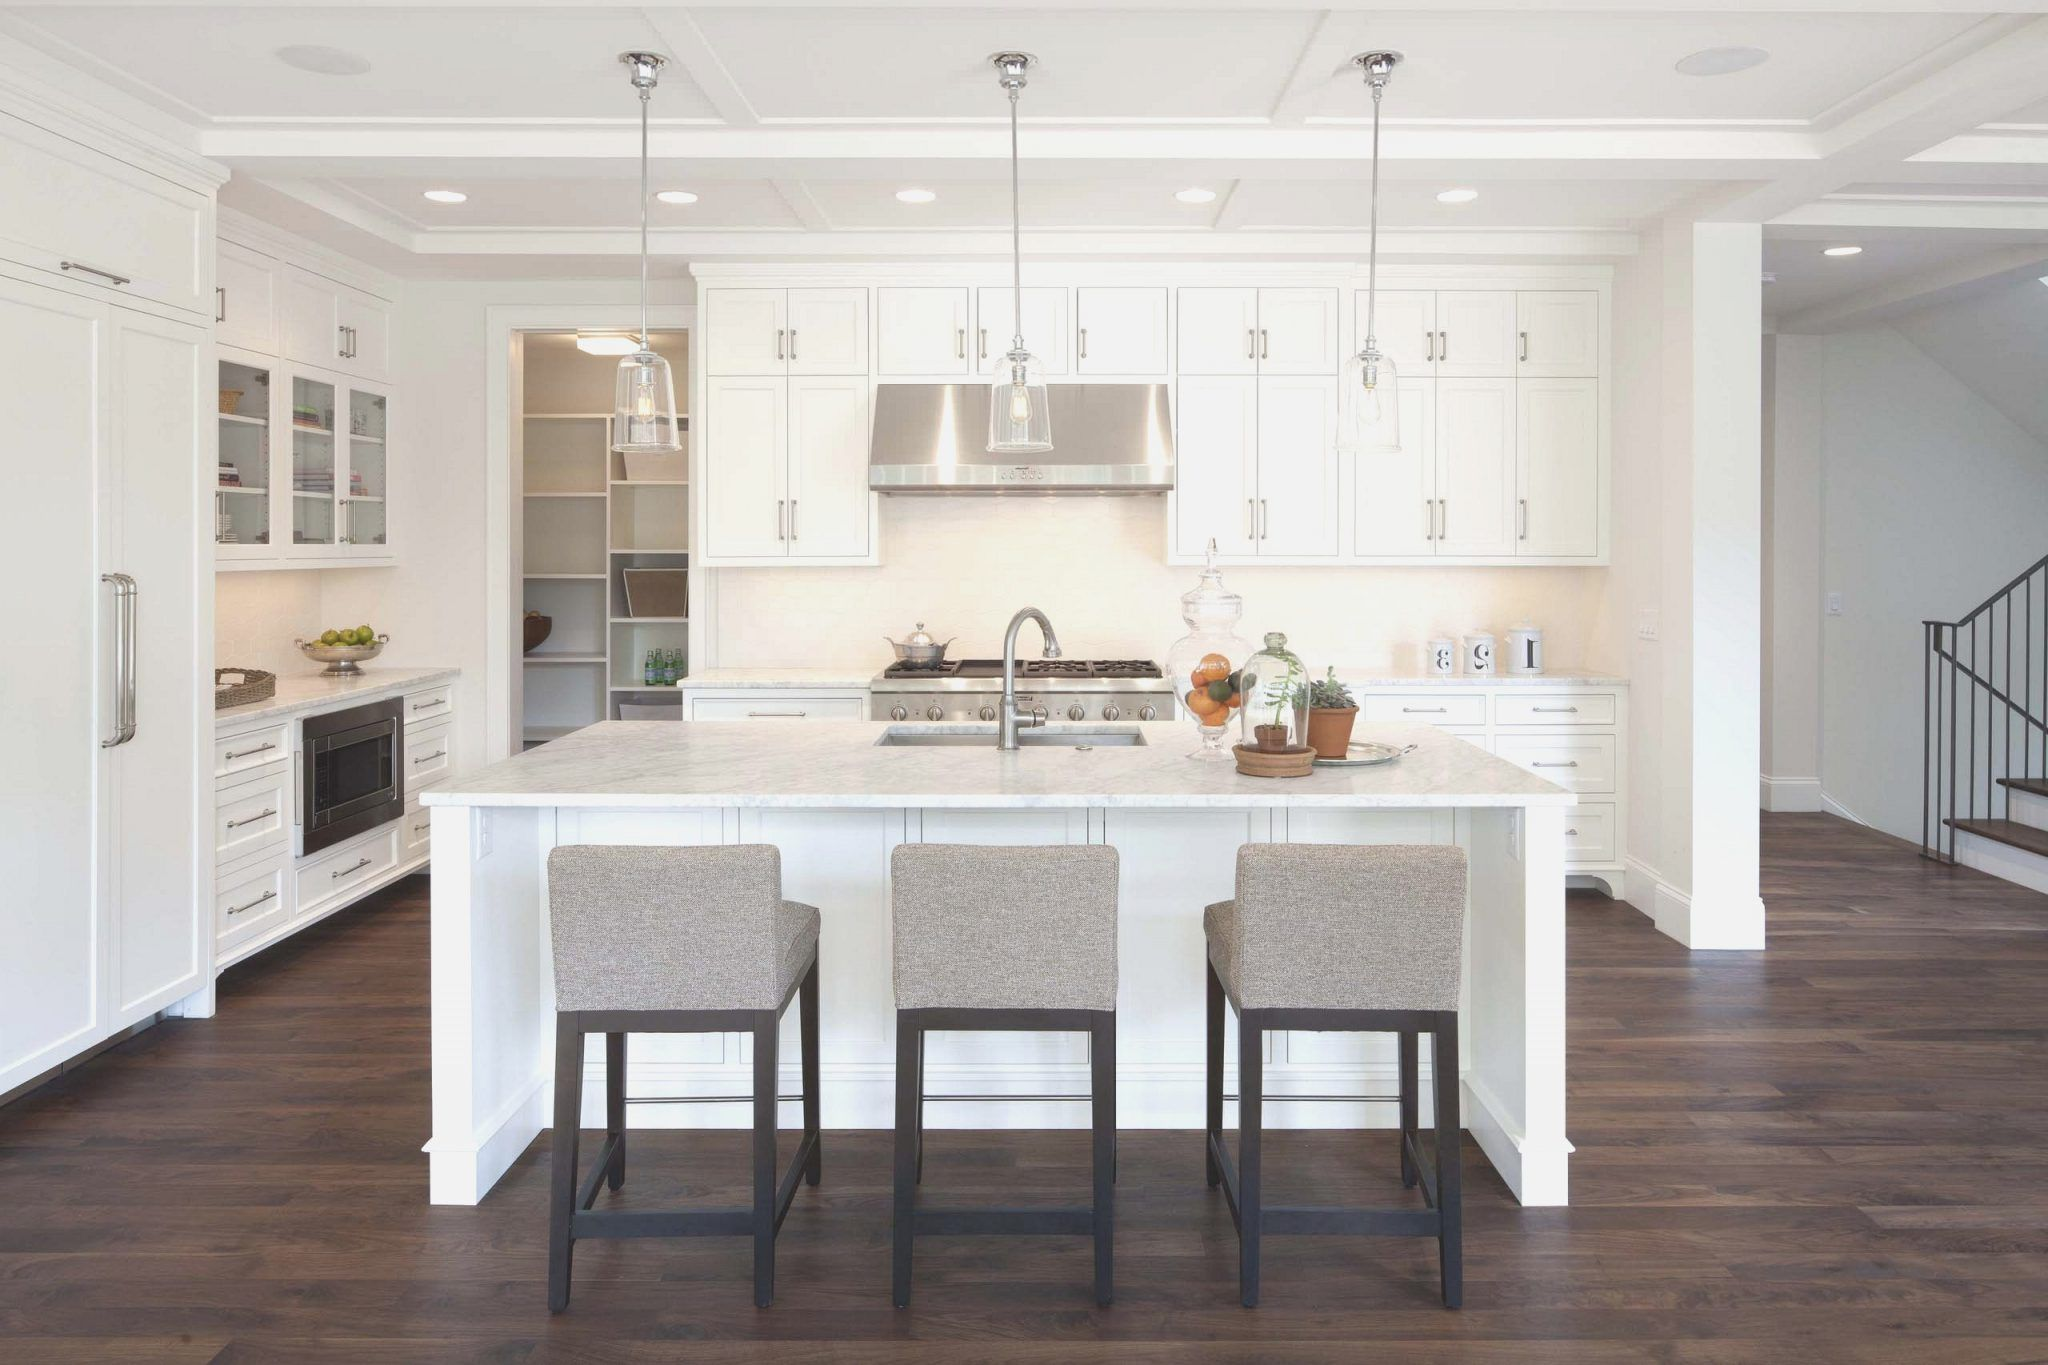 Strange White Kitchen Island With Stools Antiqued White Kitchen Andrewgaddart Wooden Chair Designs For Living Room Andrewgaddartcom